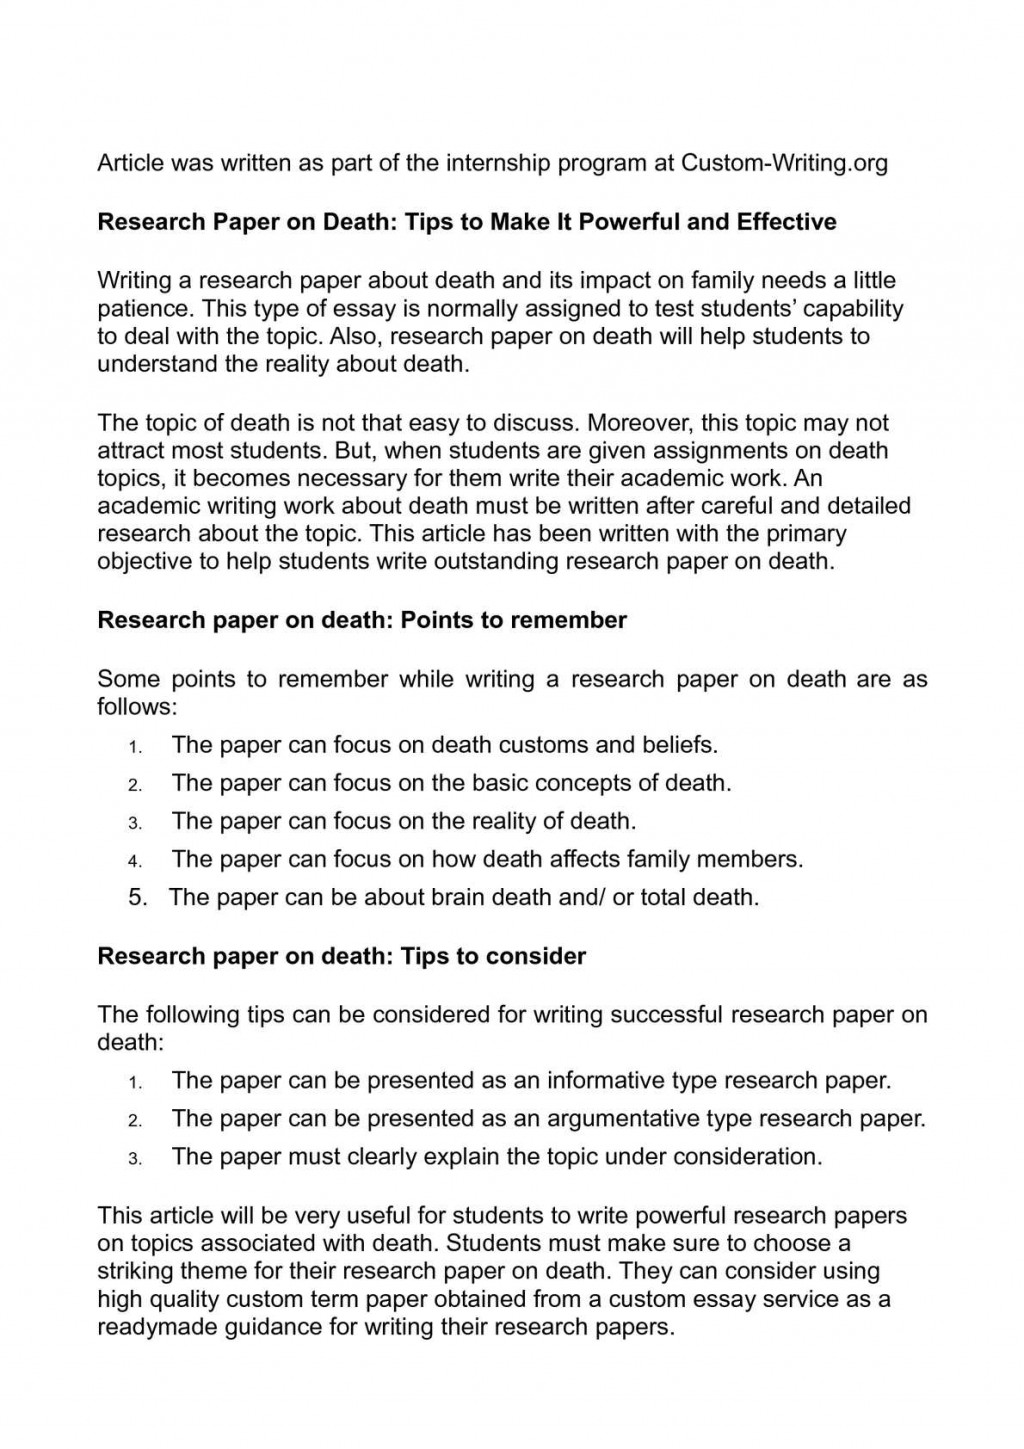 007 P1 Research Paper Original Papers For Singular Sale Large